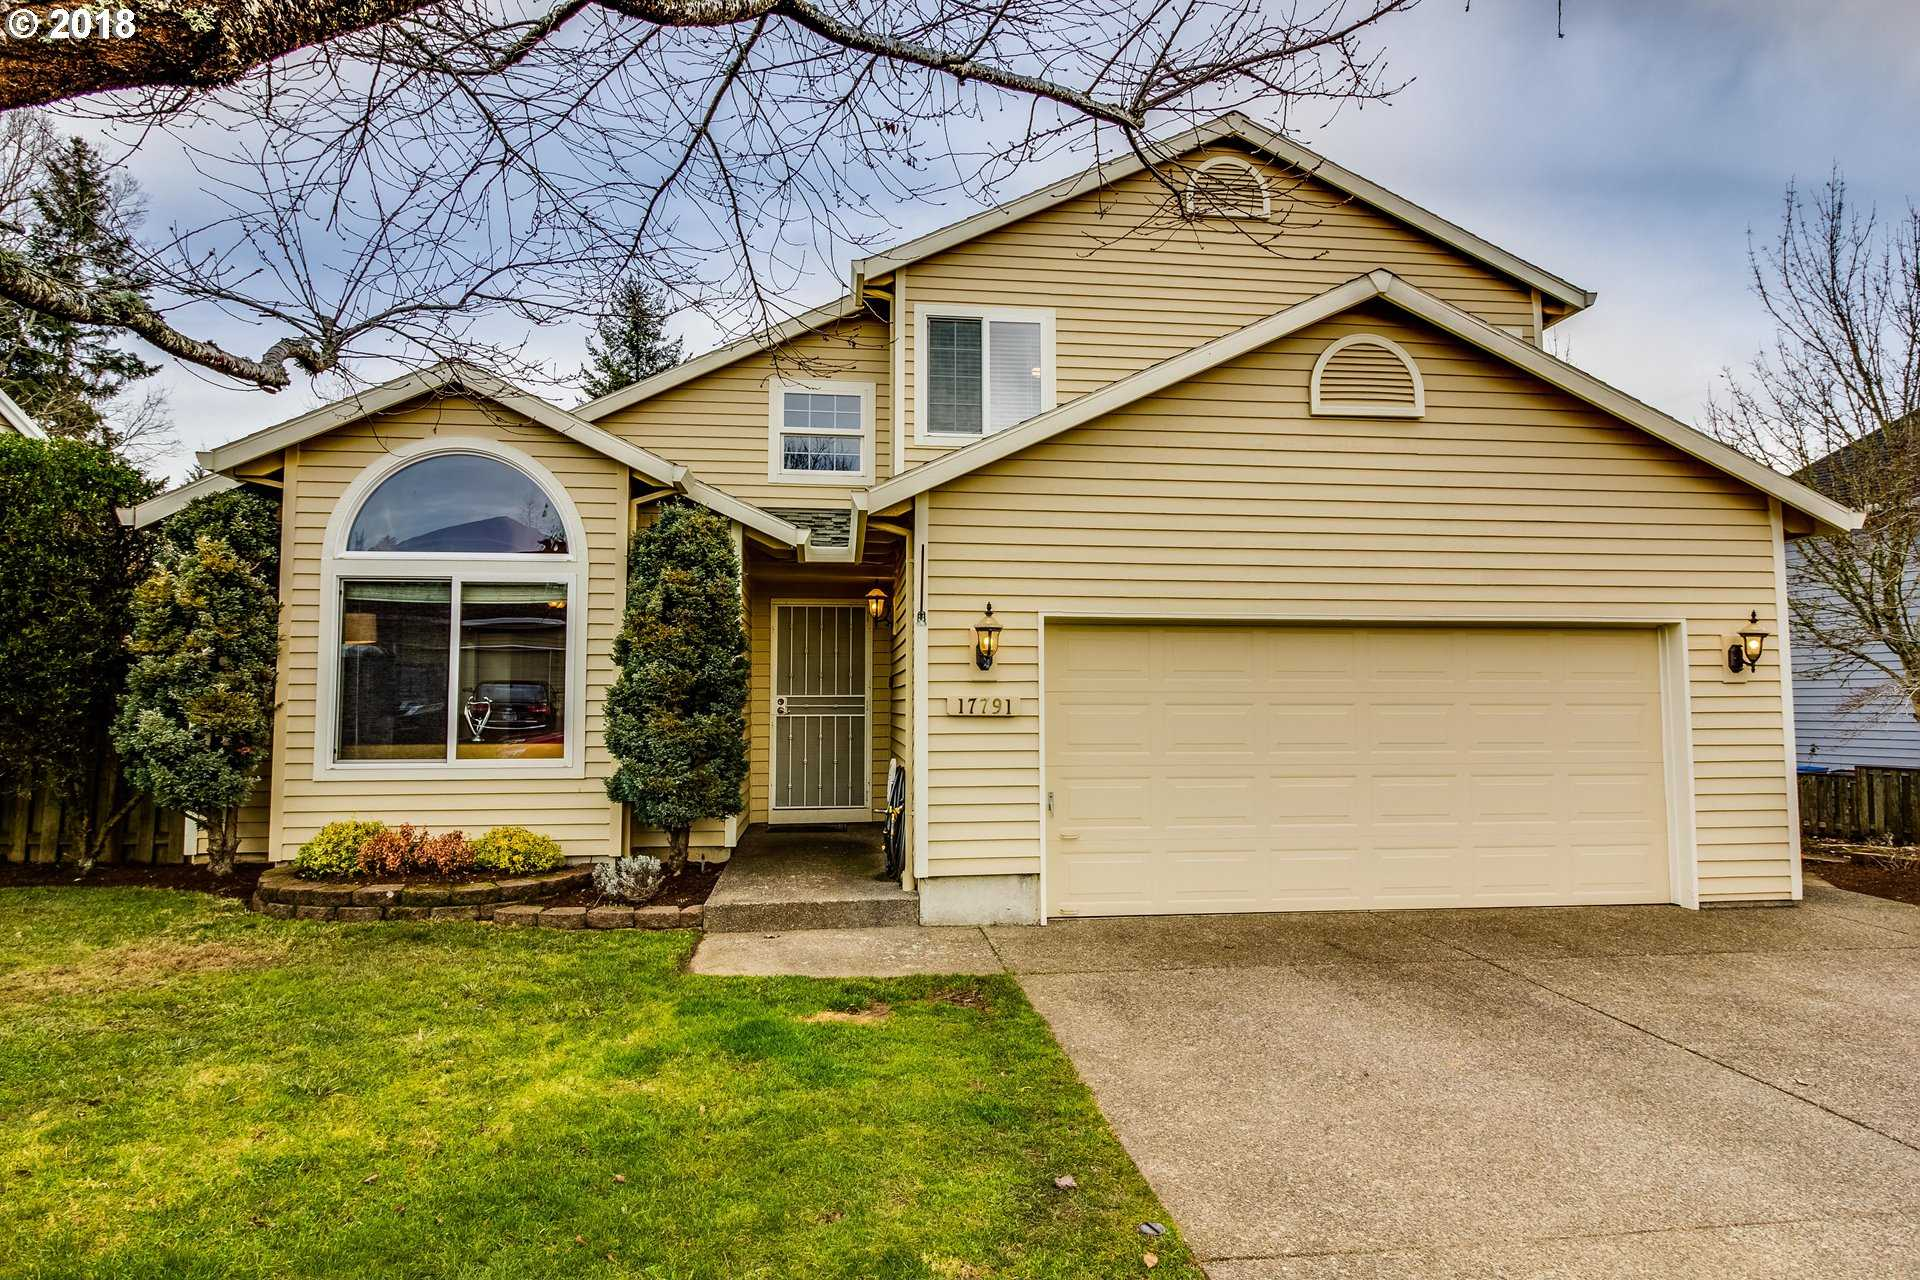 $465,000 - 4Br/3Ba -  for Sale in Woodhaven, Sherwood